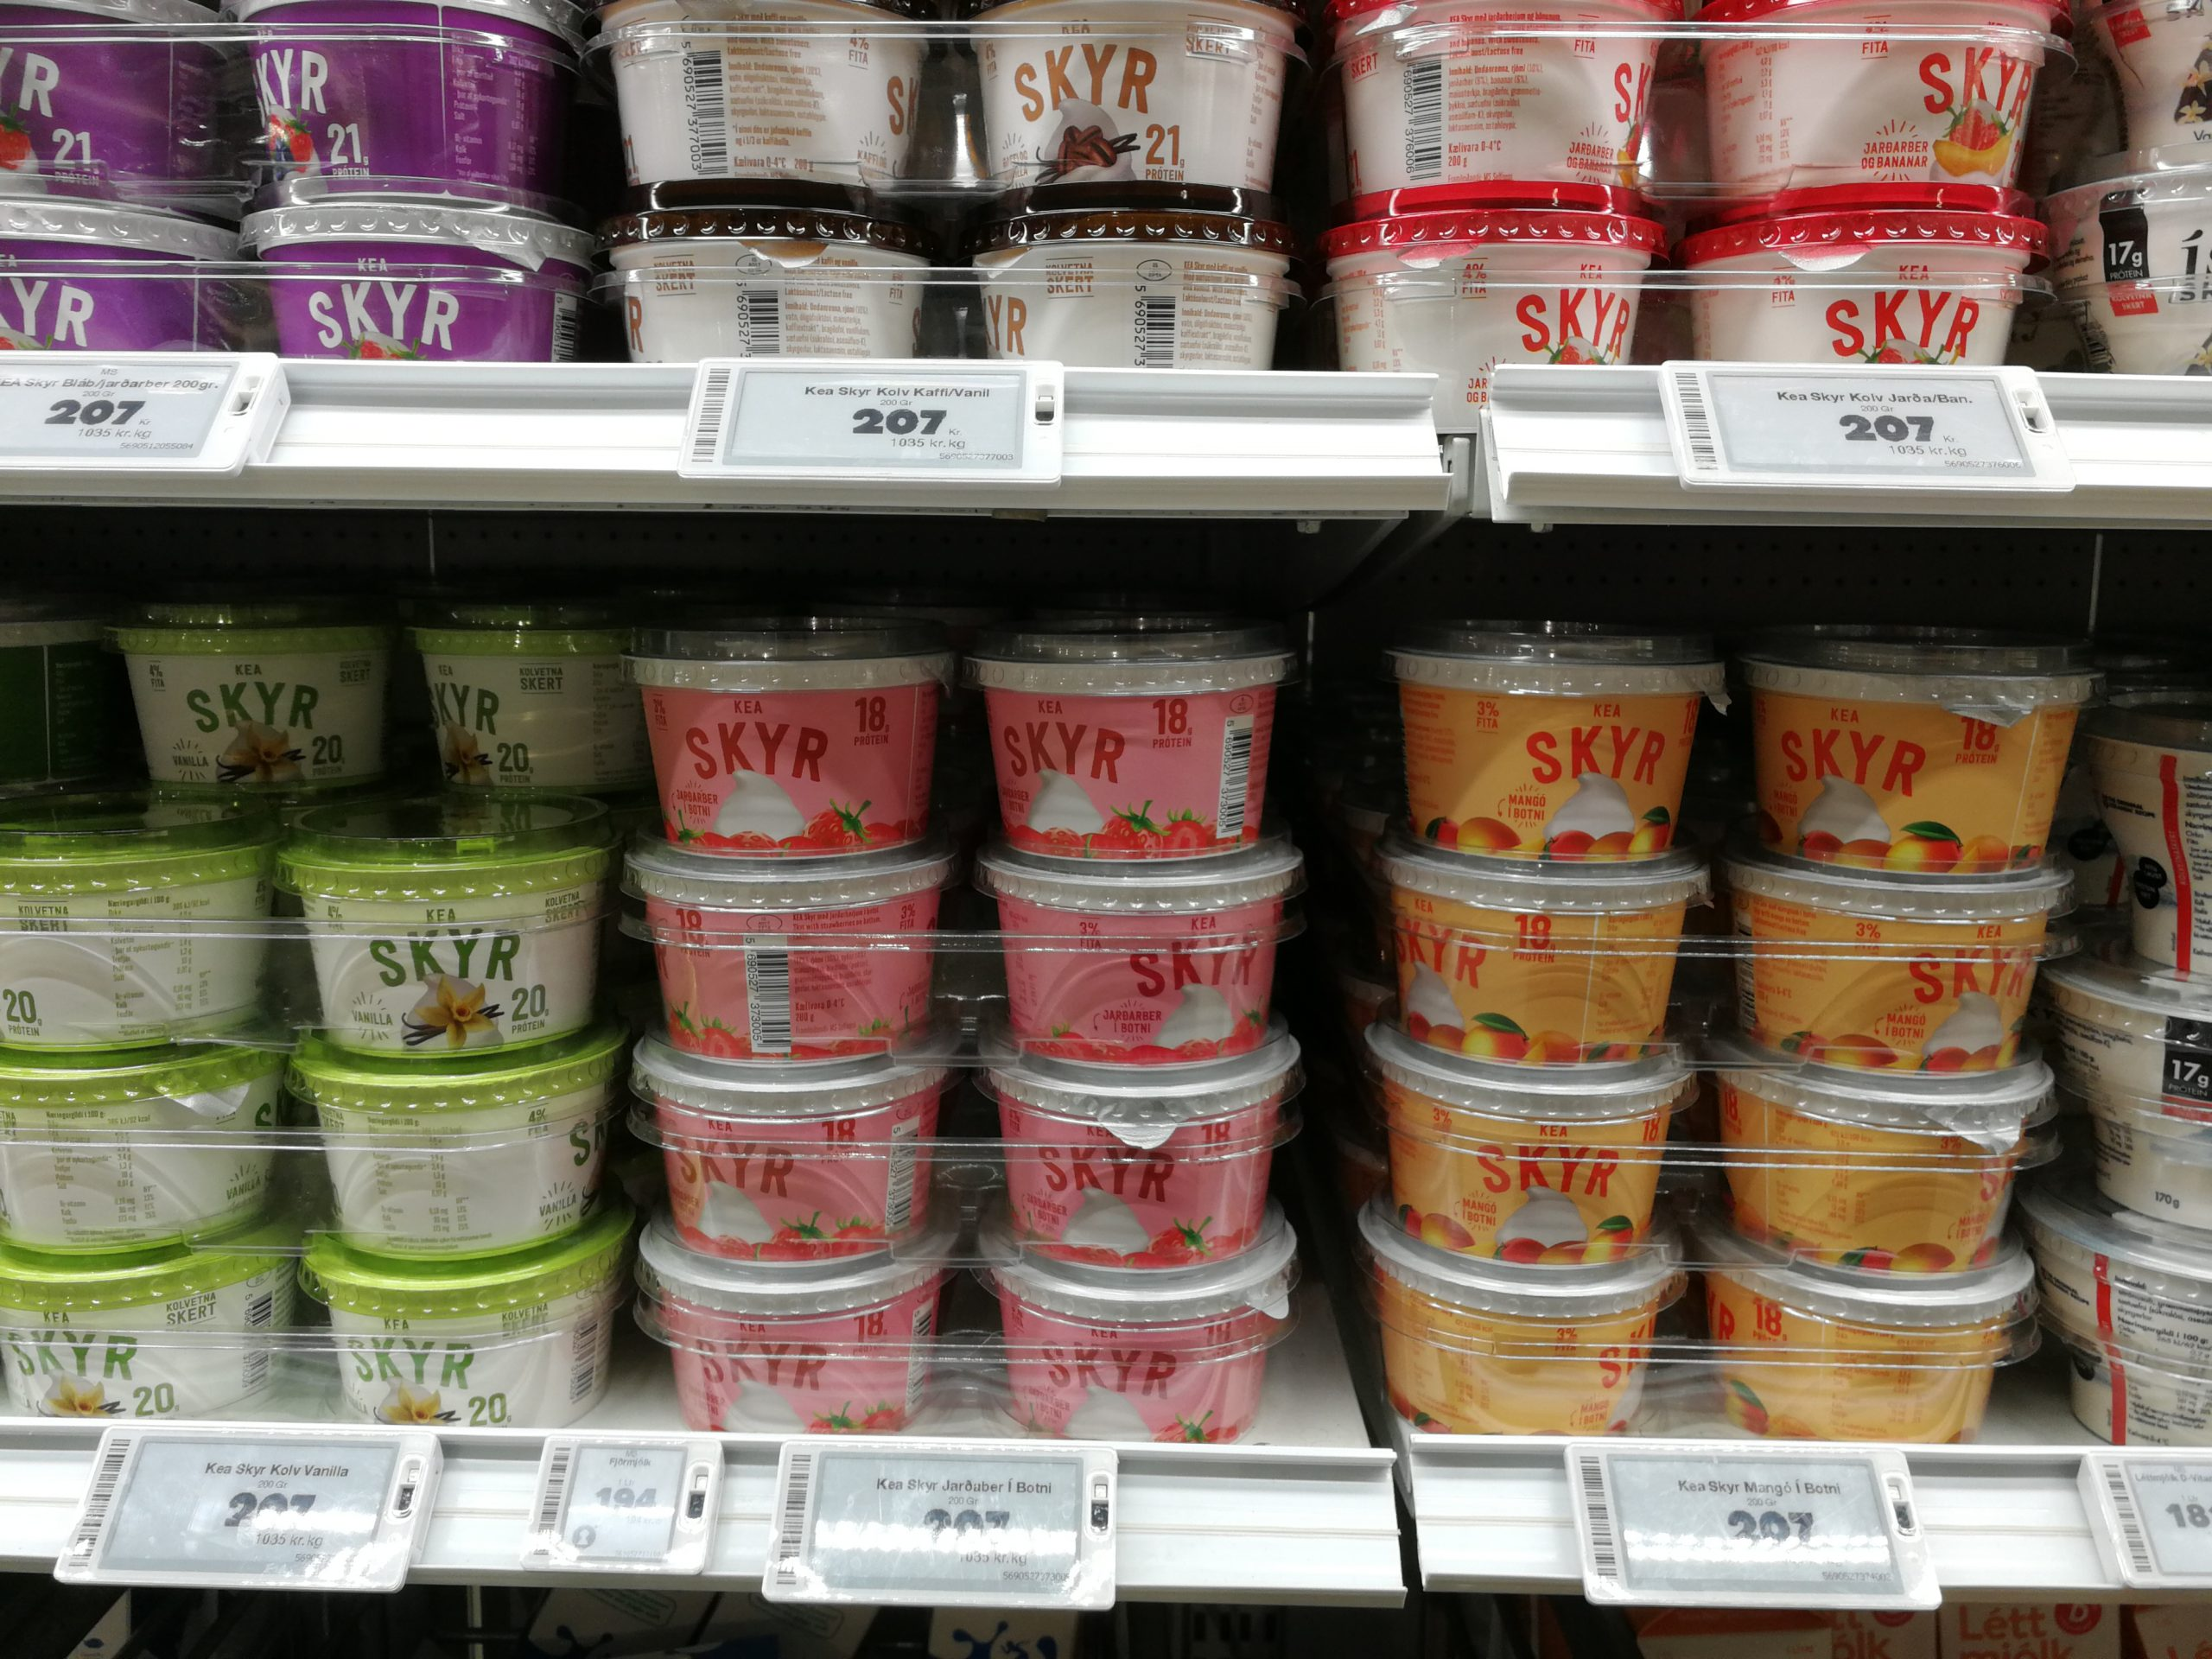 Skyr in einem Supermarkt in Island